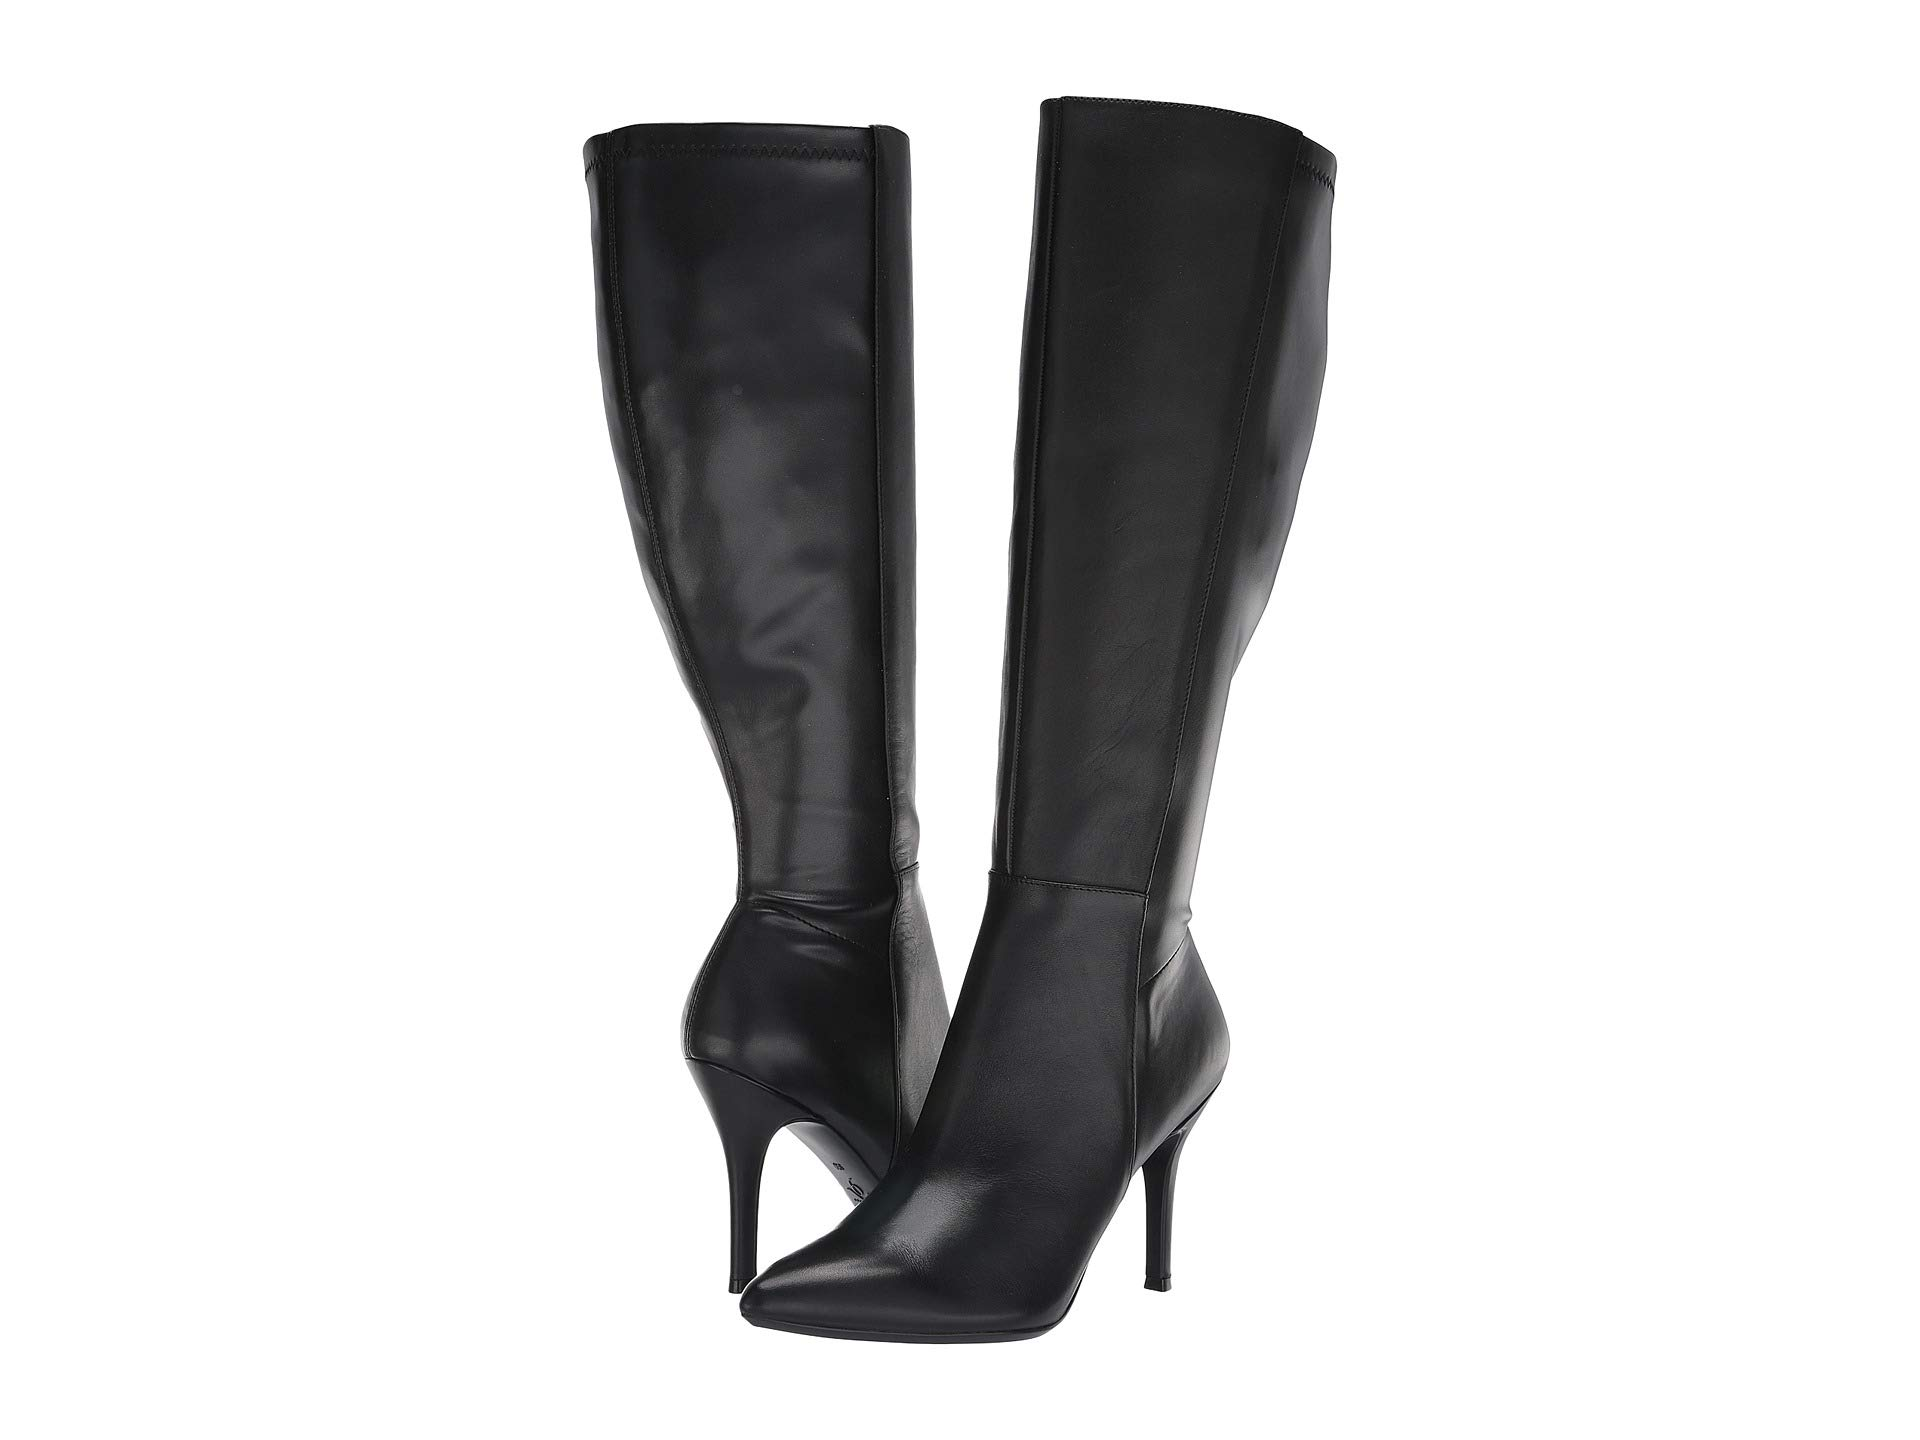 Nine West Nine West Fallon Tall Dress EXTRA WIDE Boot